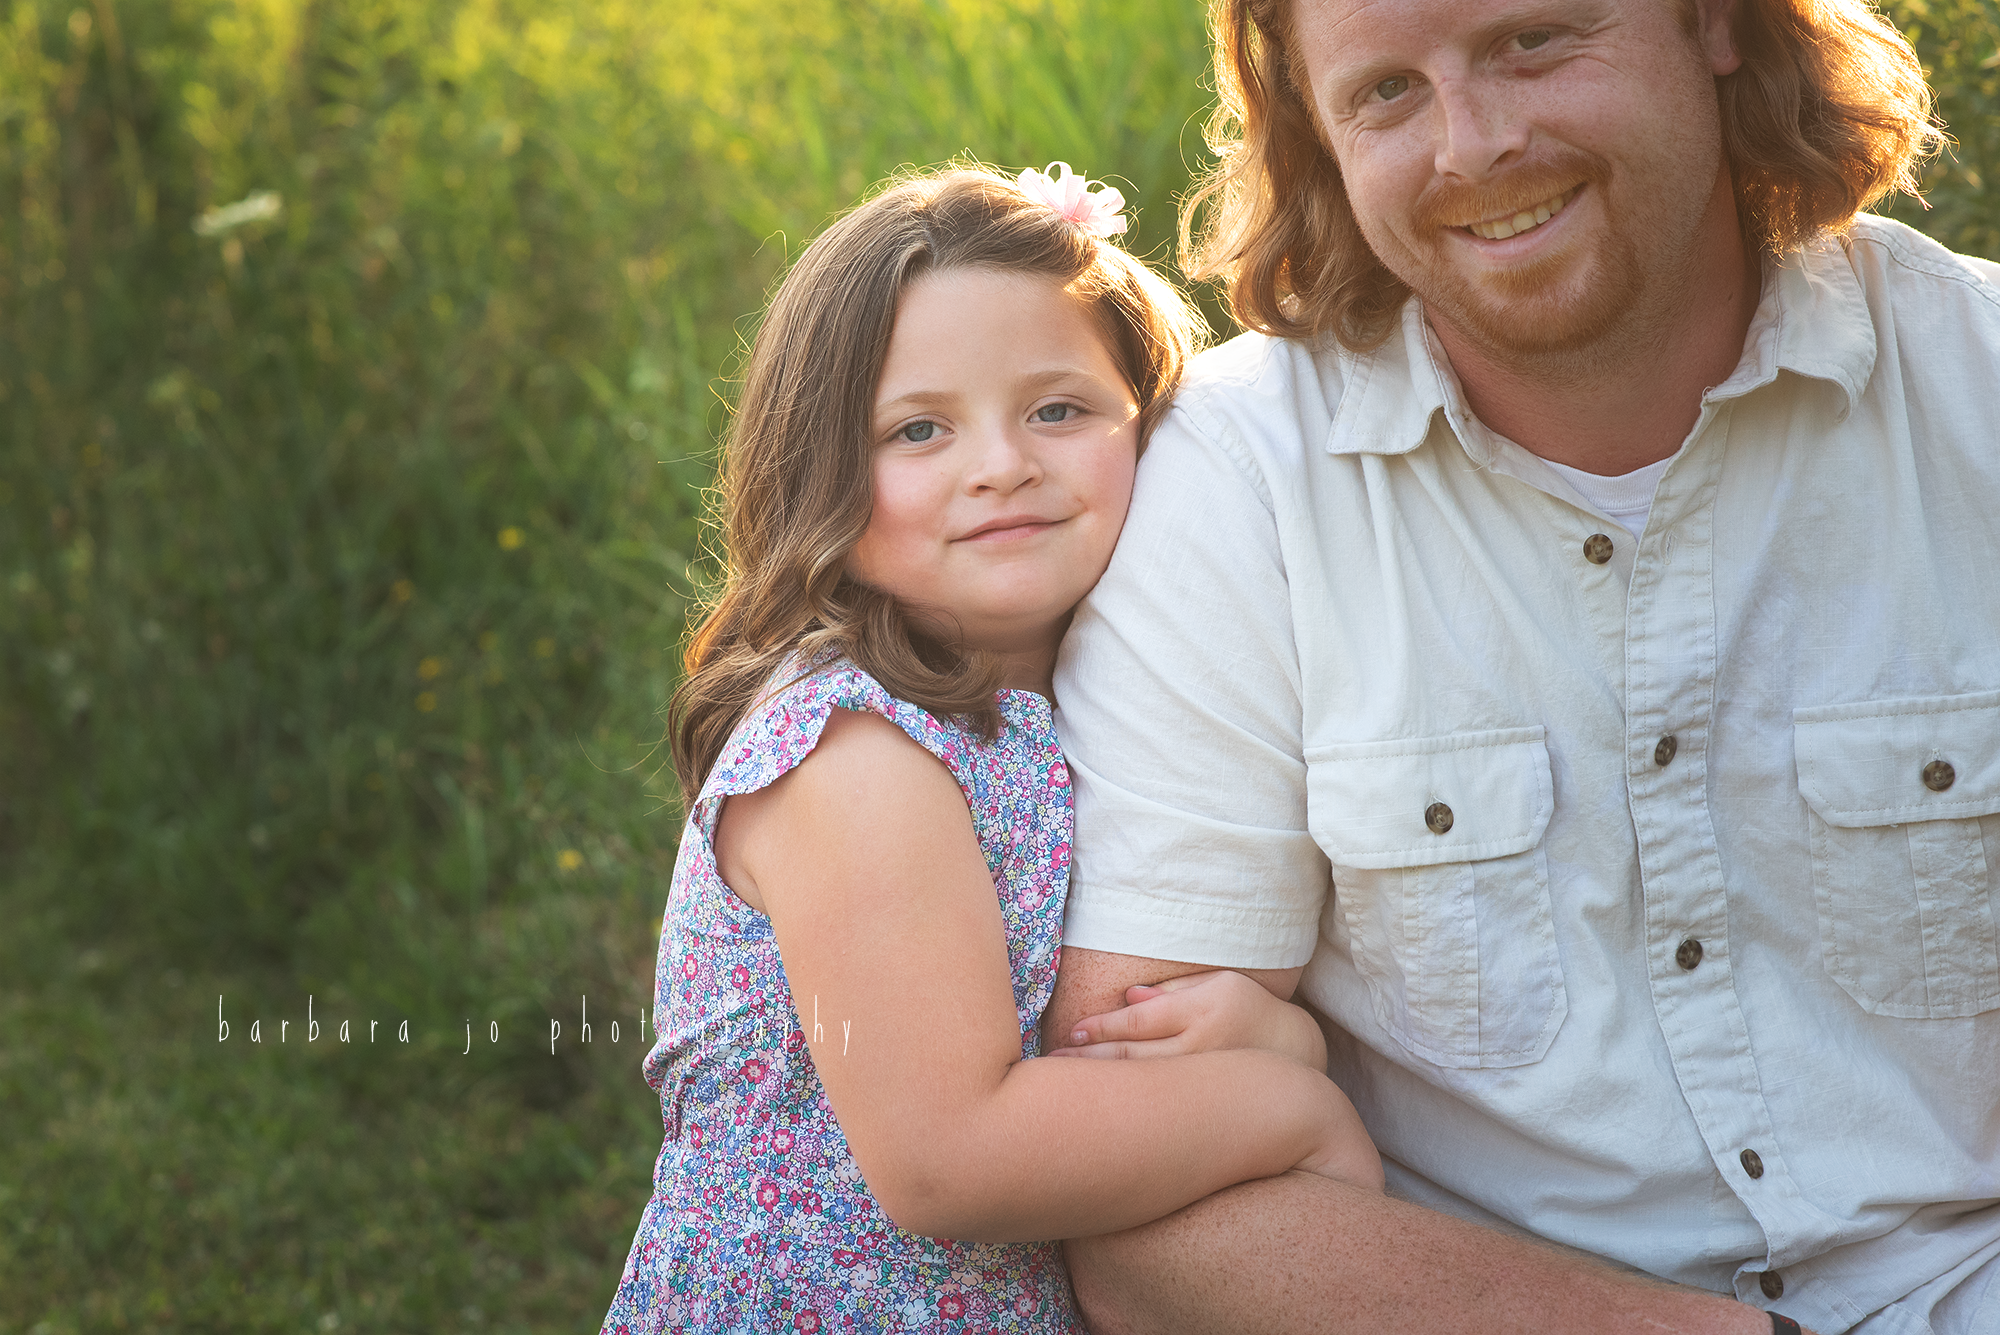 bjp-dover-ohio-northeast--family-children-daddy-daughter-photographer-swinderman3.png